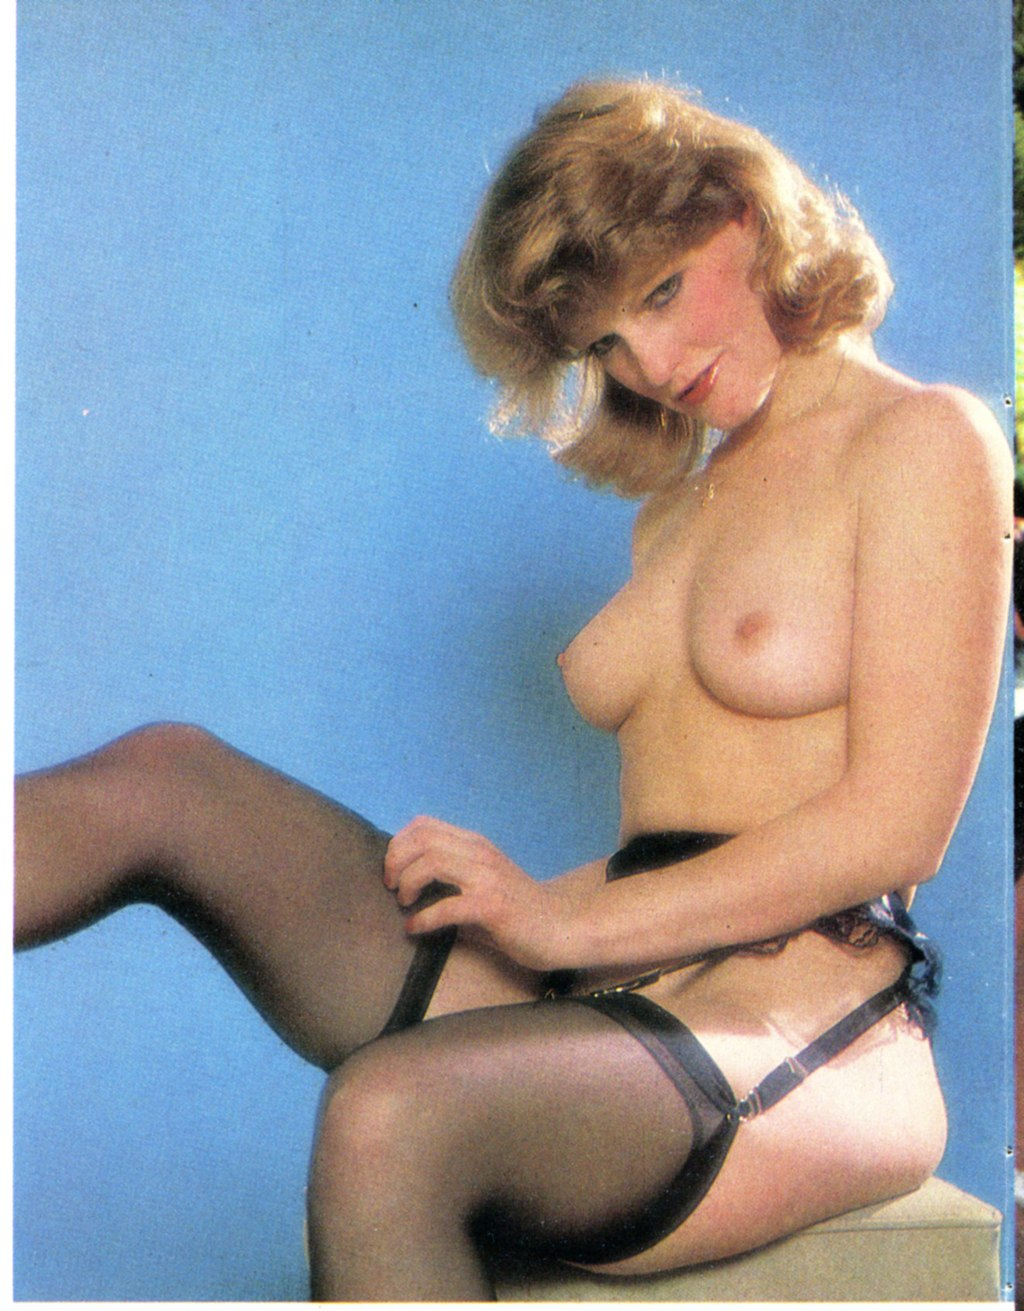 dorothy lemay porn movies